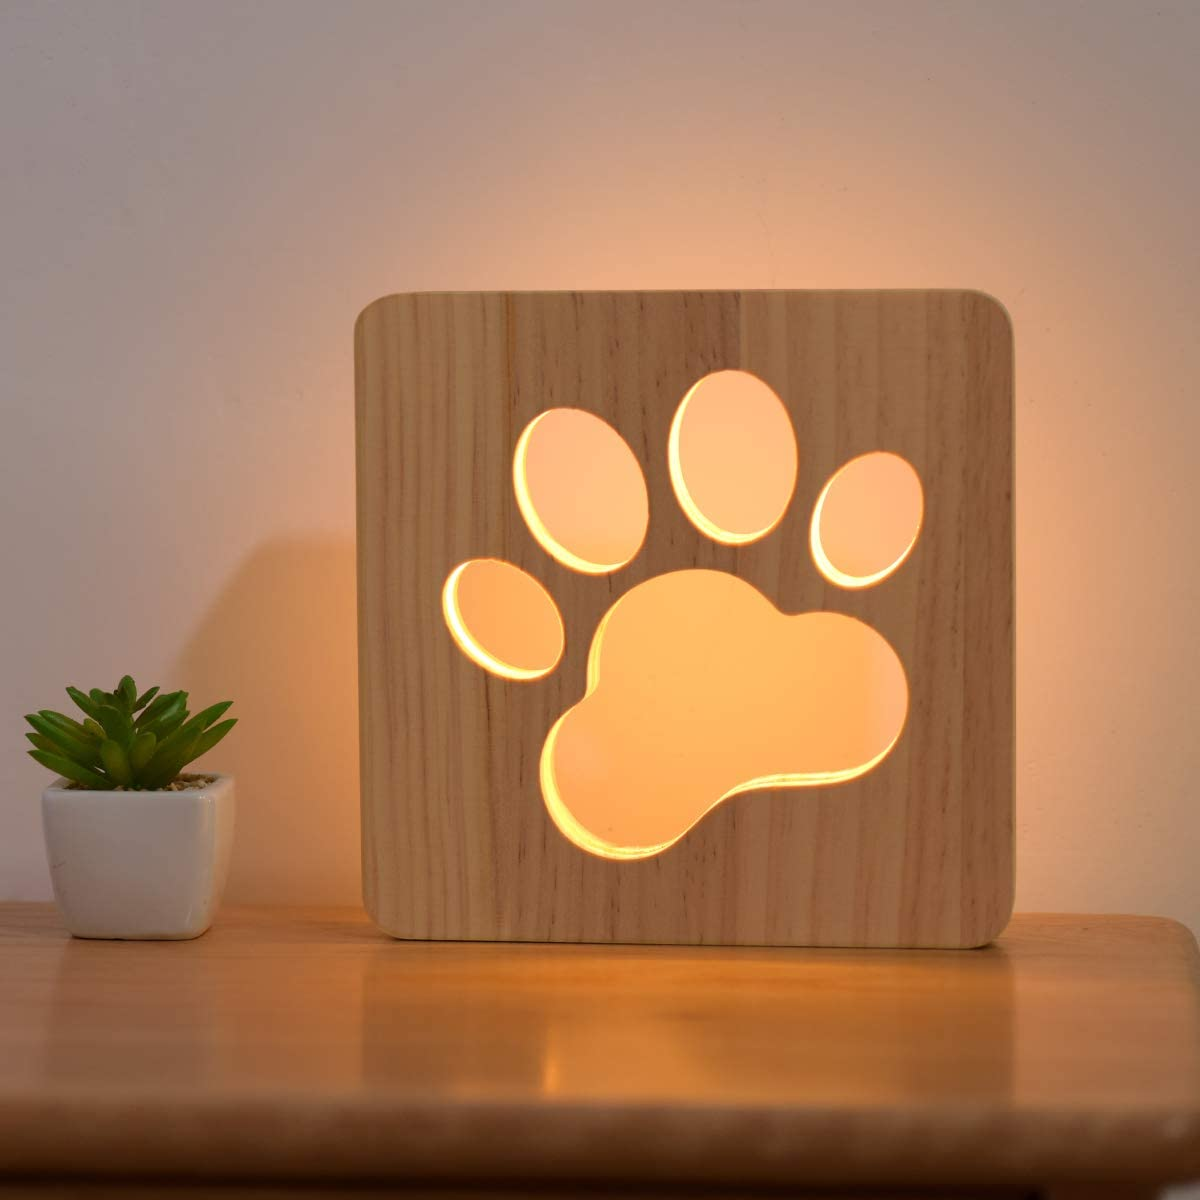 Lampeez Paw Wooden Lamp Novelty Night Very popular for 3D lamp Illusion Light Minneapolis Mall